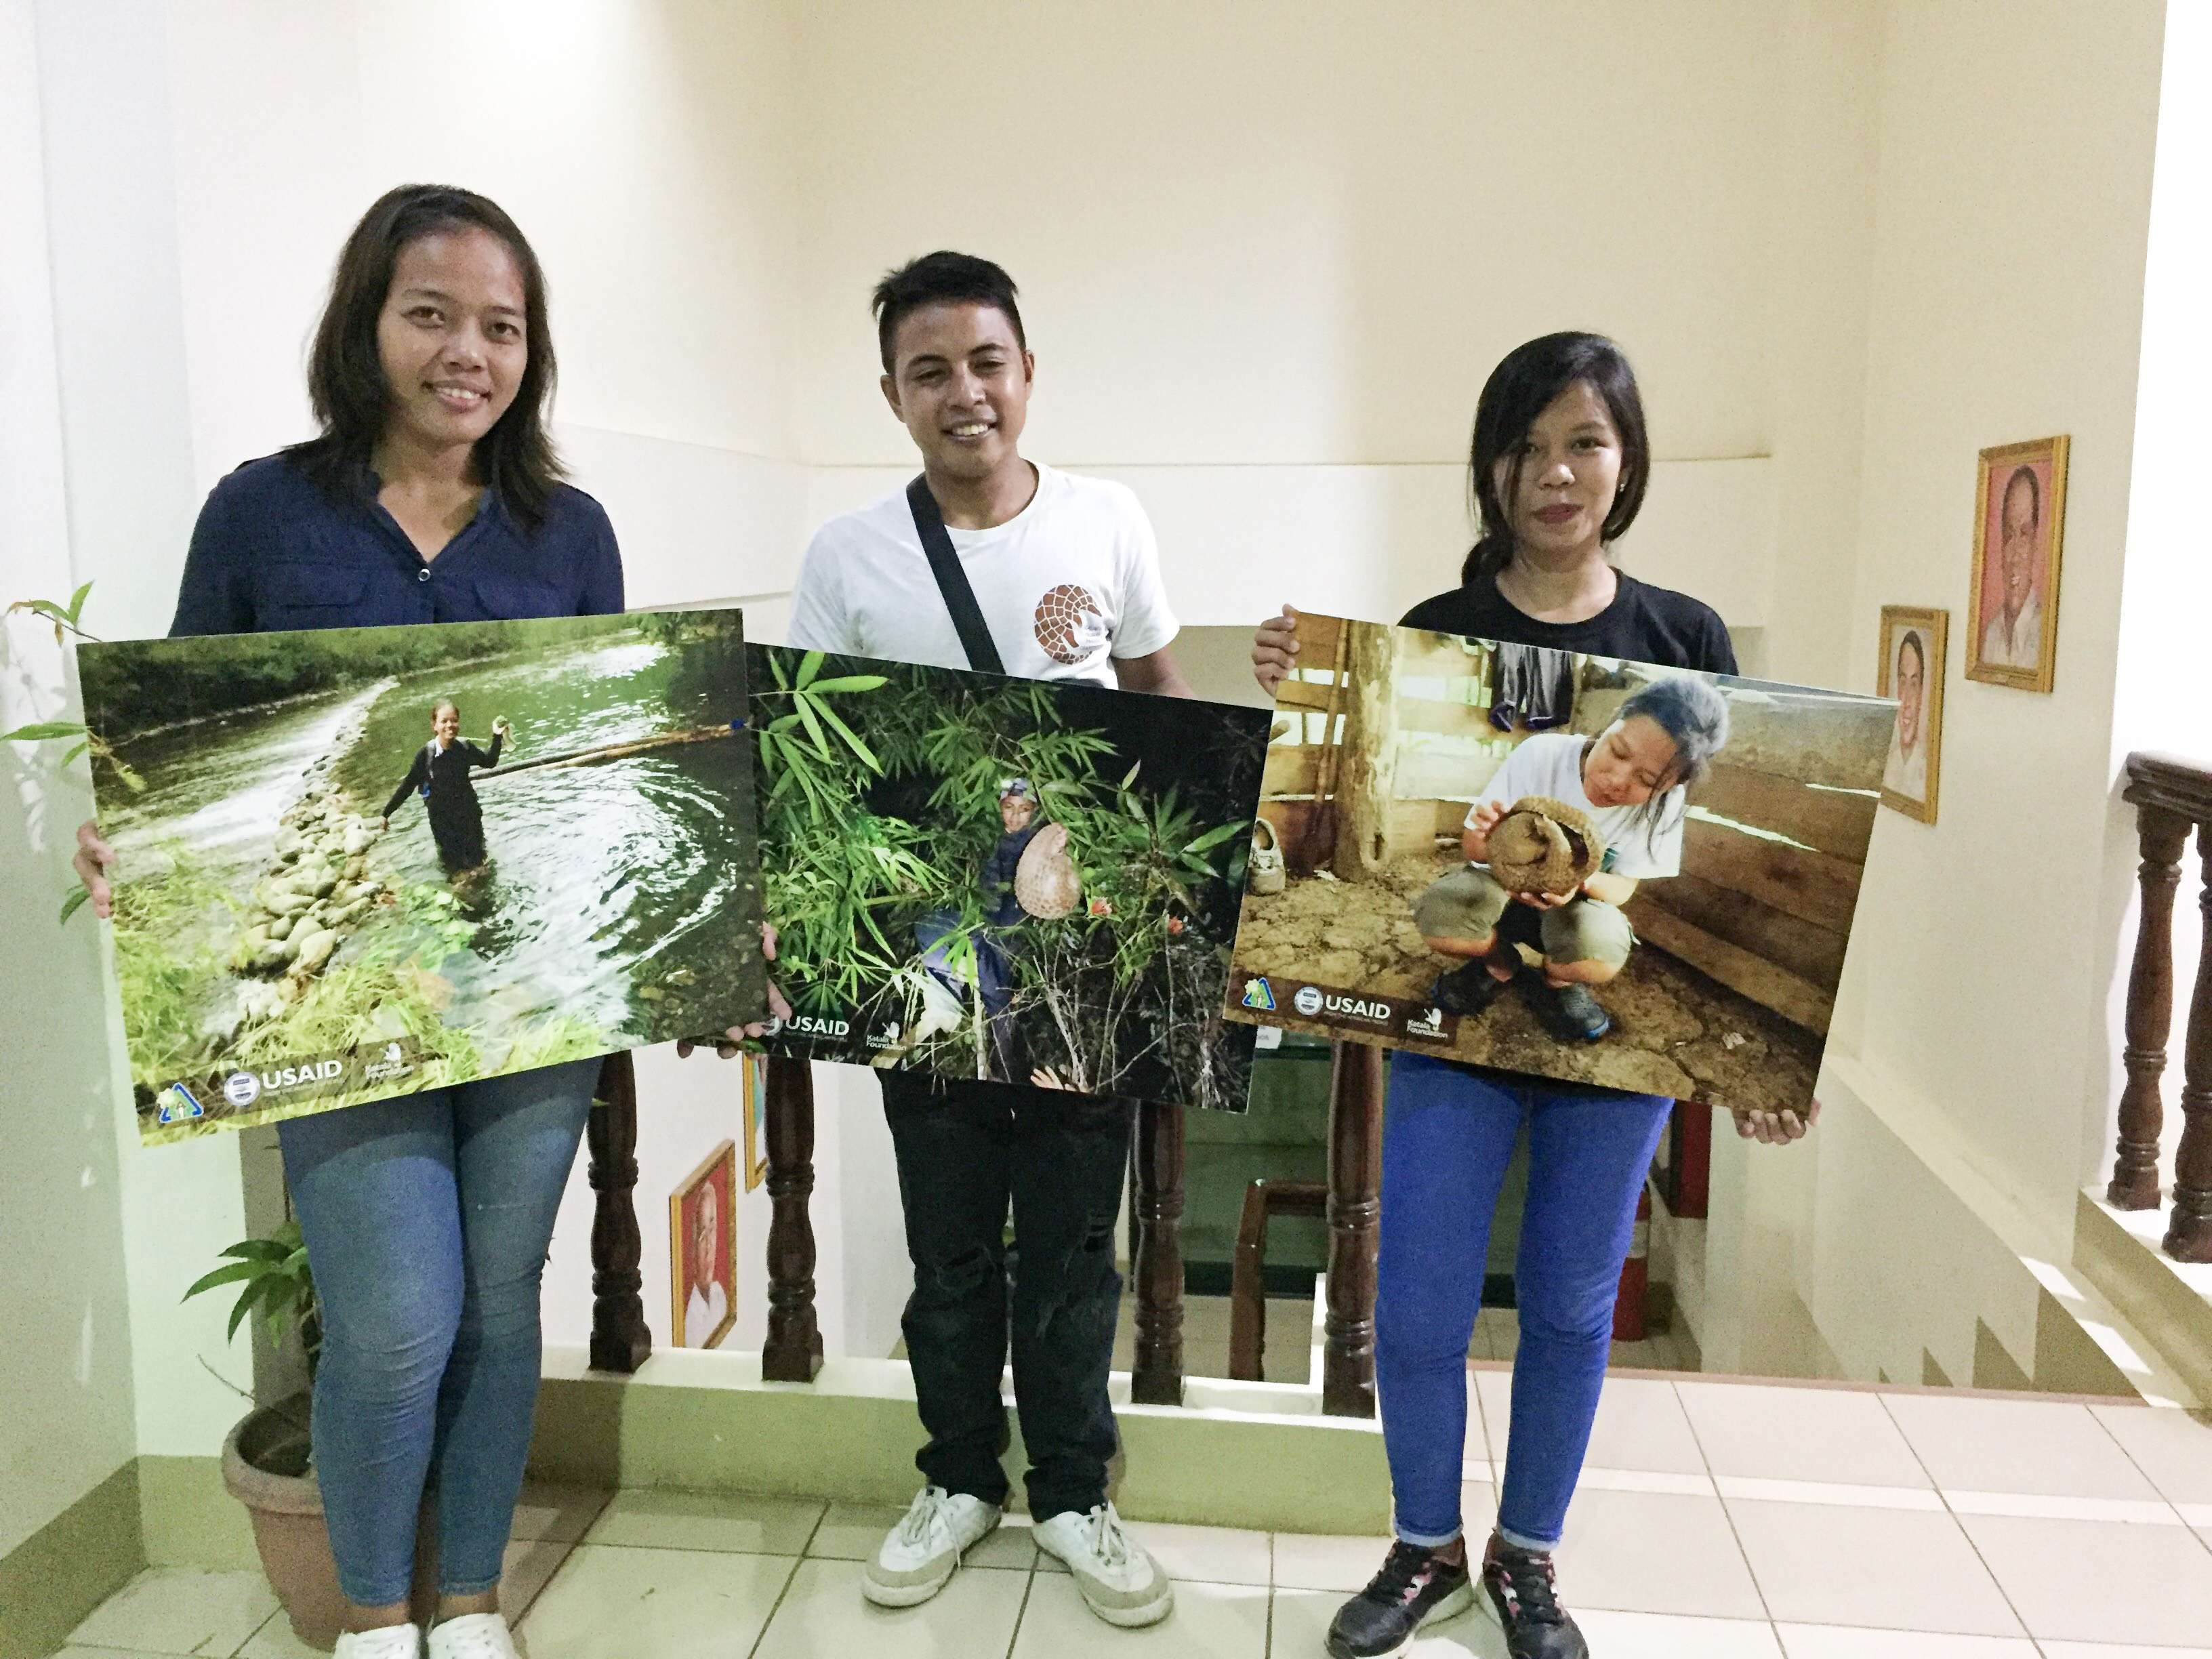 HOPEFUL. Palawan Pangolin Conservation Program research assistants proudly show their enlarged photos taken in the Victoria-Anepahan Mountain Range, one of the known pangolin habitats in the province. Photo by Keith Anthony S. Fabro